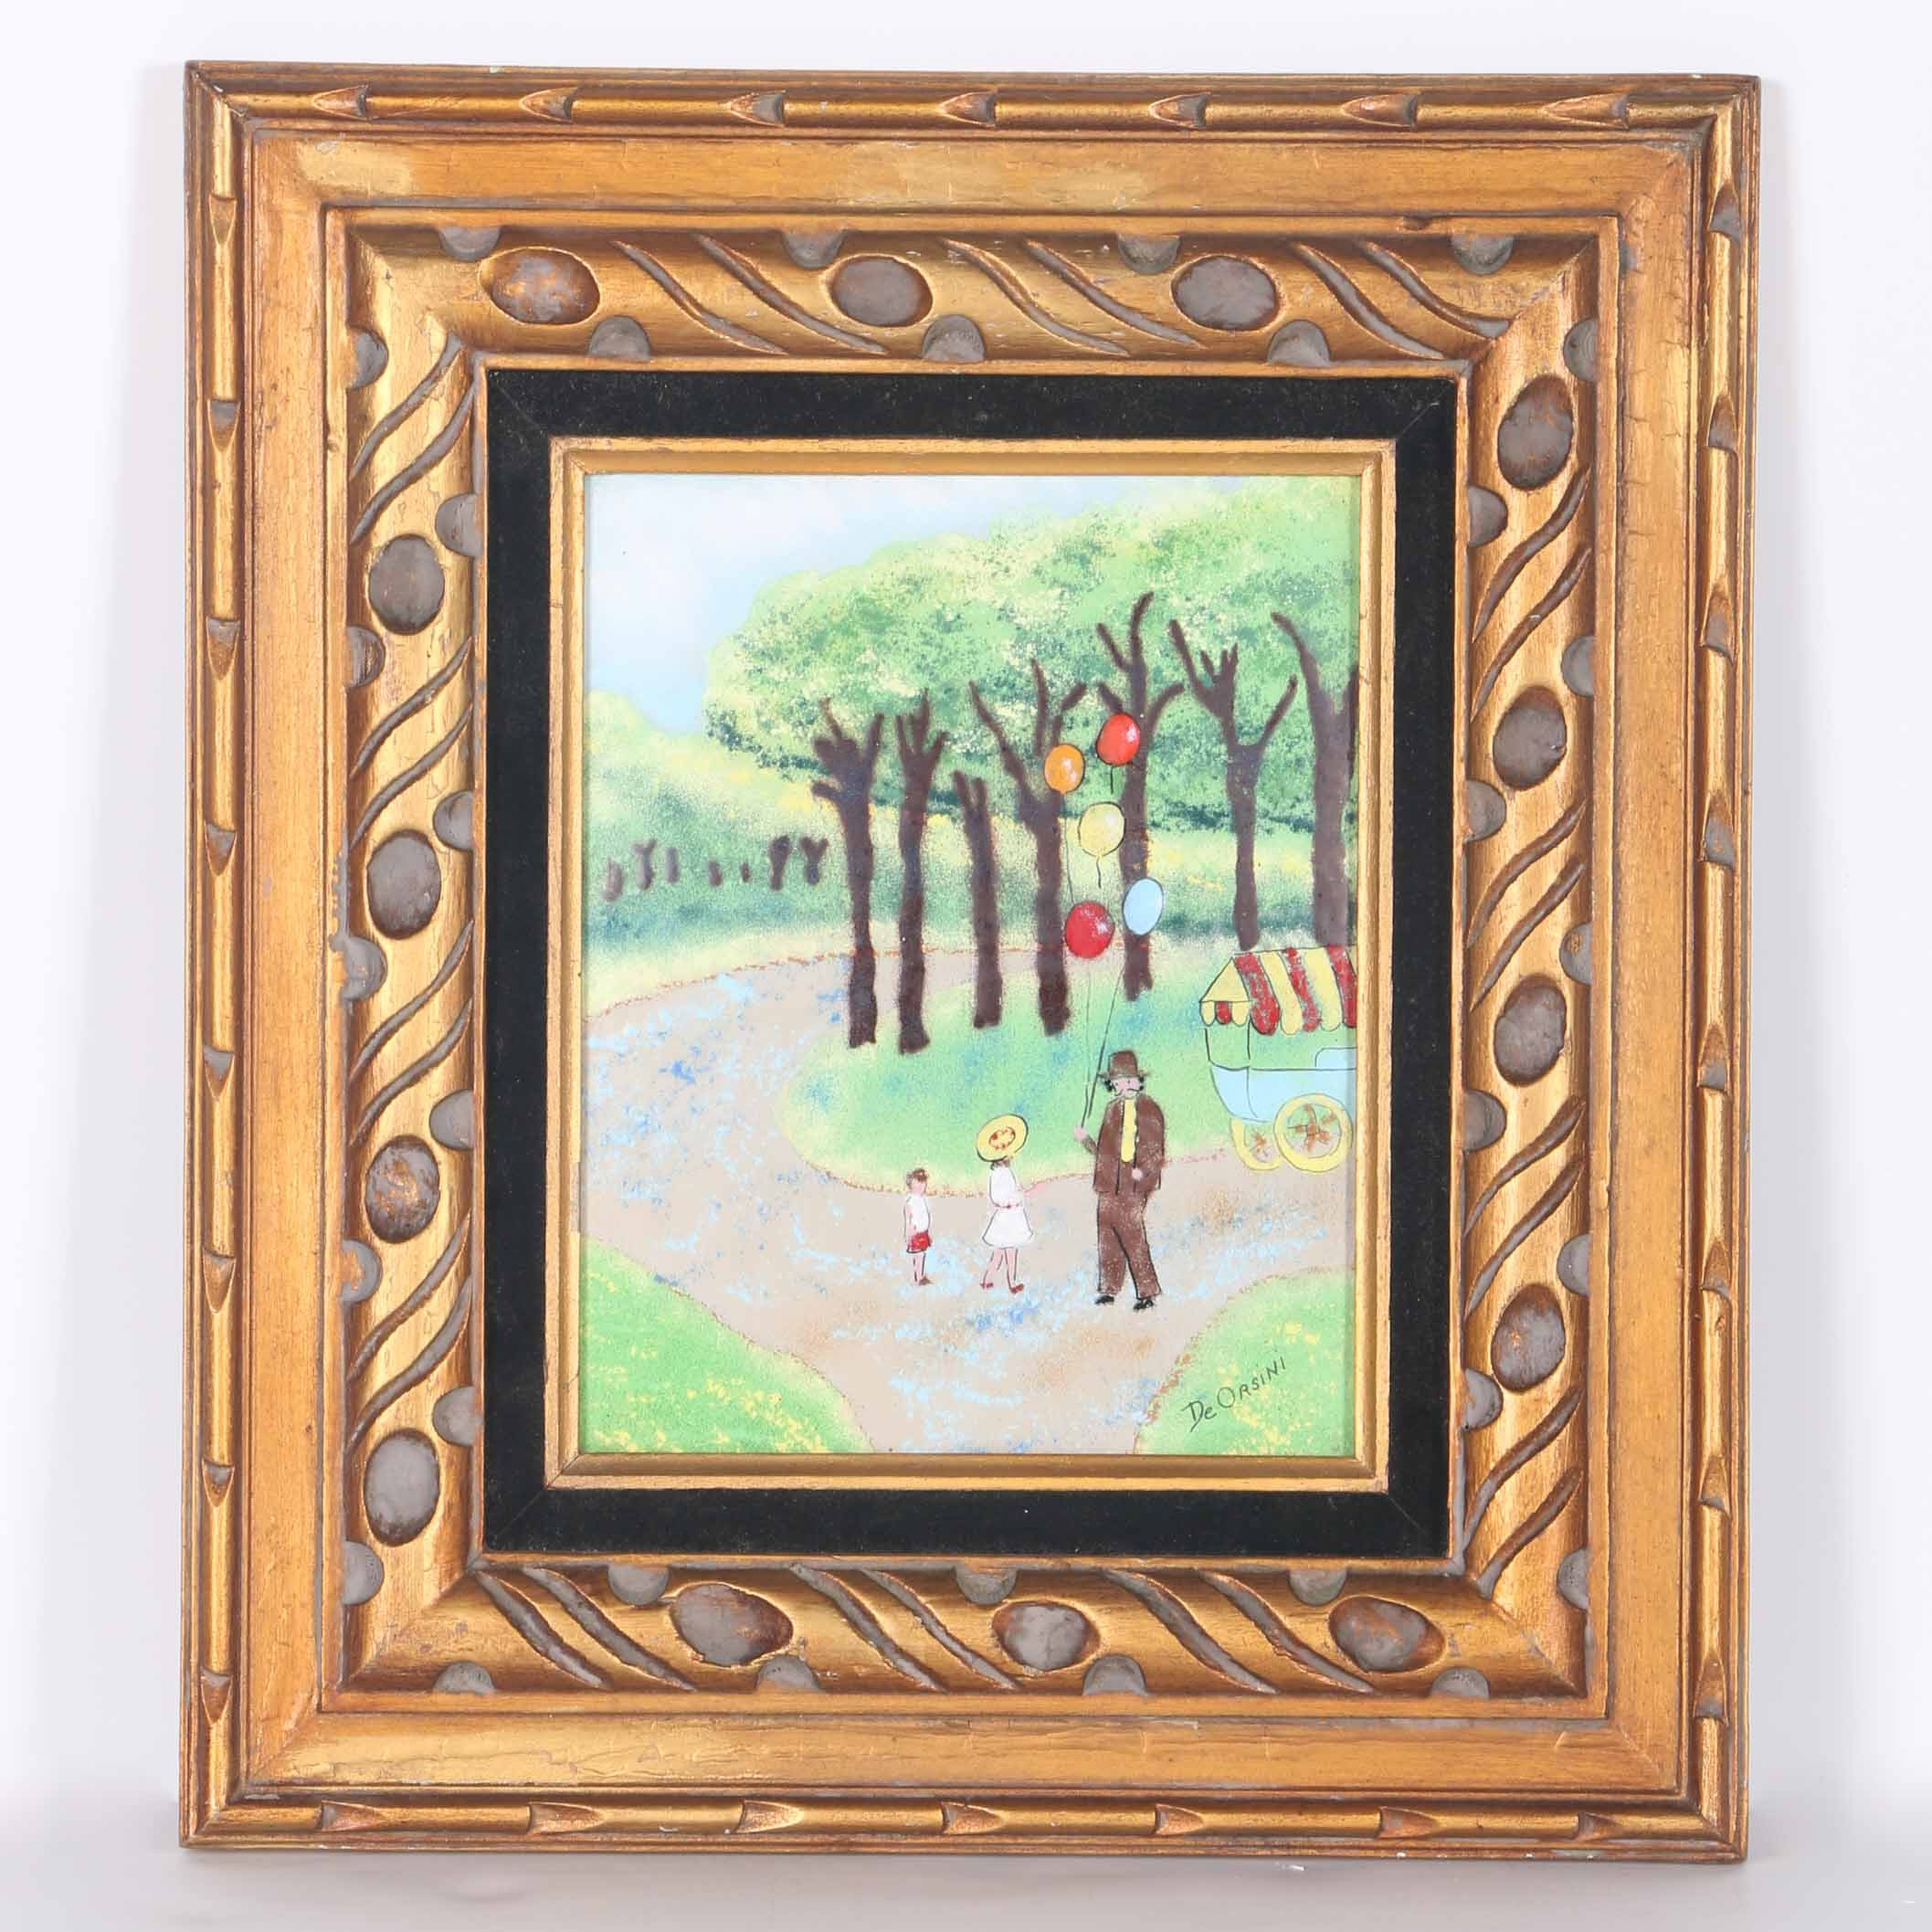 DeOrsini Oil on Copper of a Park Scene